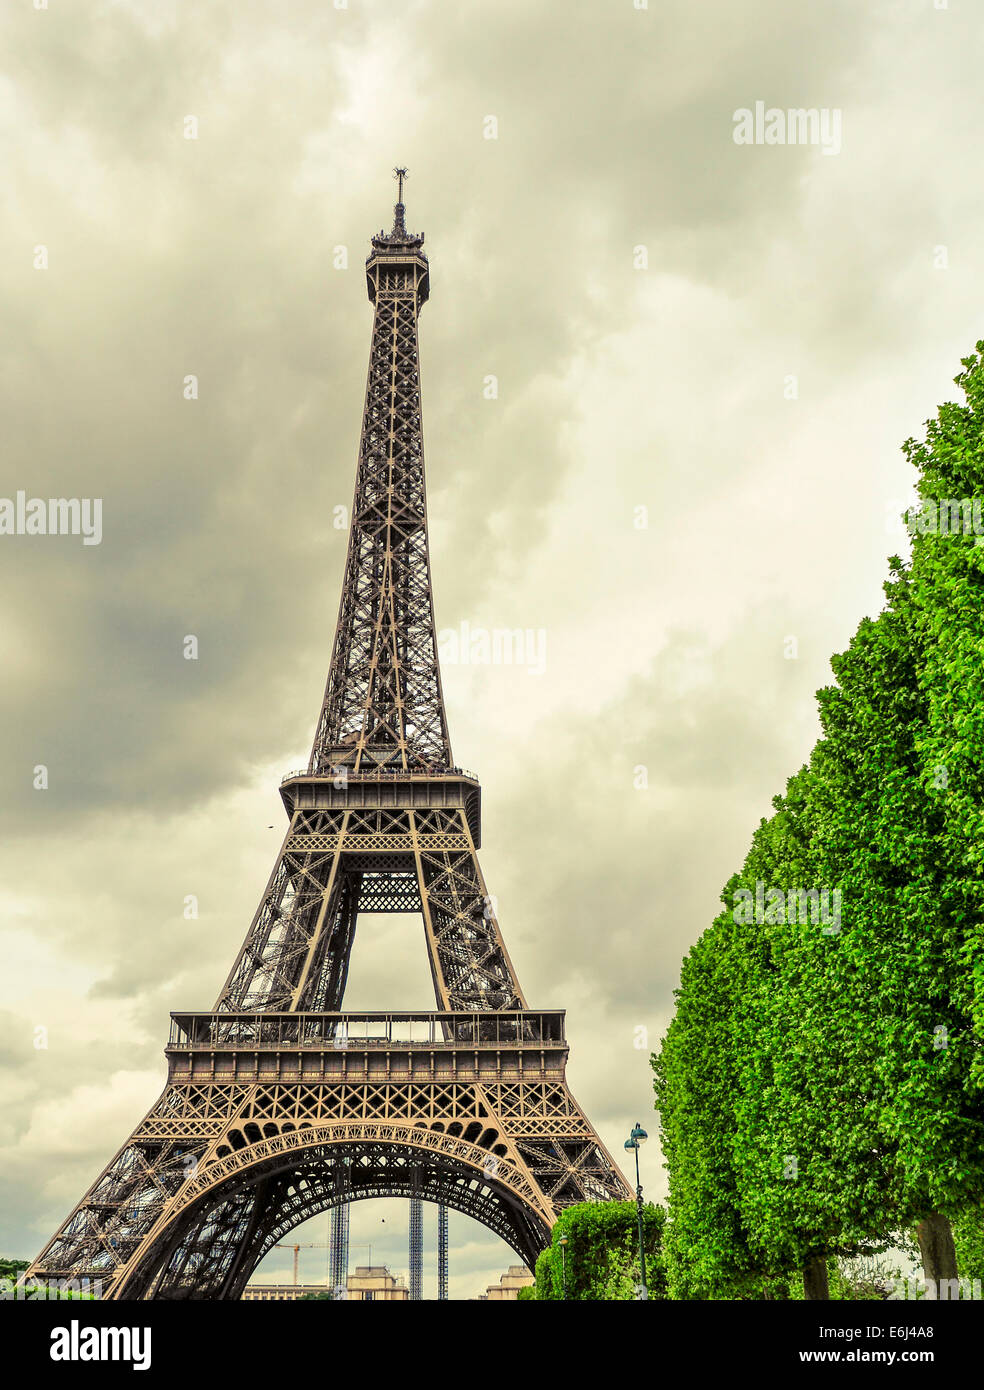 view of the Eiffel Tower in Paris, France, with an effect of old postcard - Stock Image